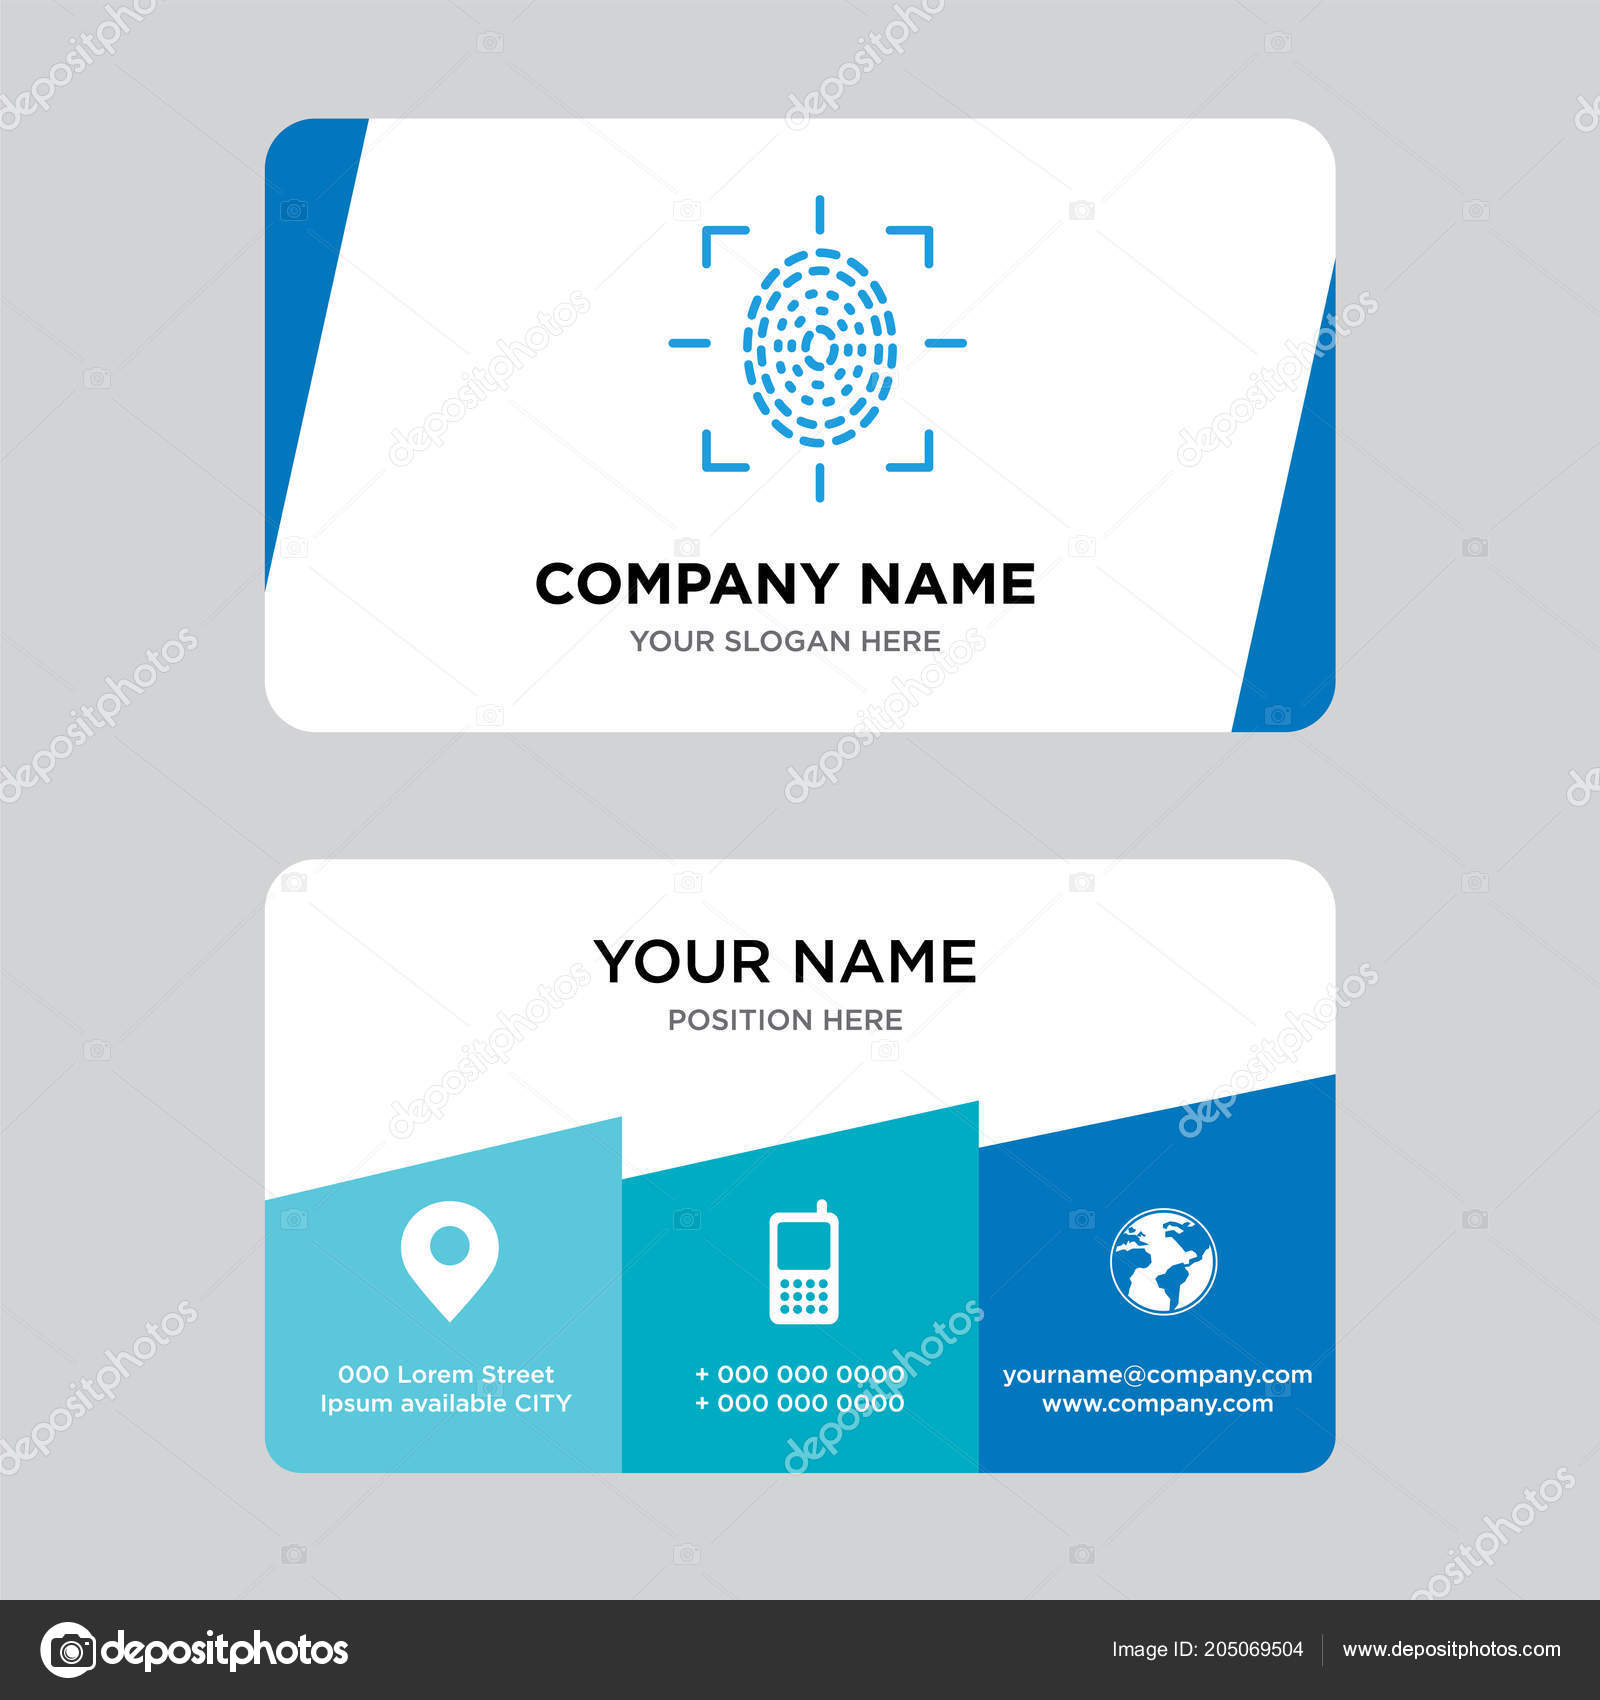 Fingerprint Scan Business Card Design Template Visiting Your Company